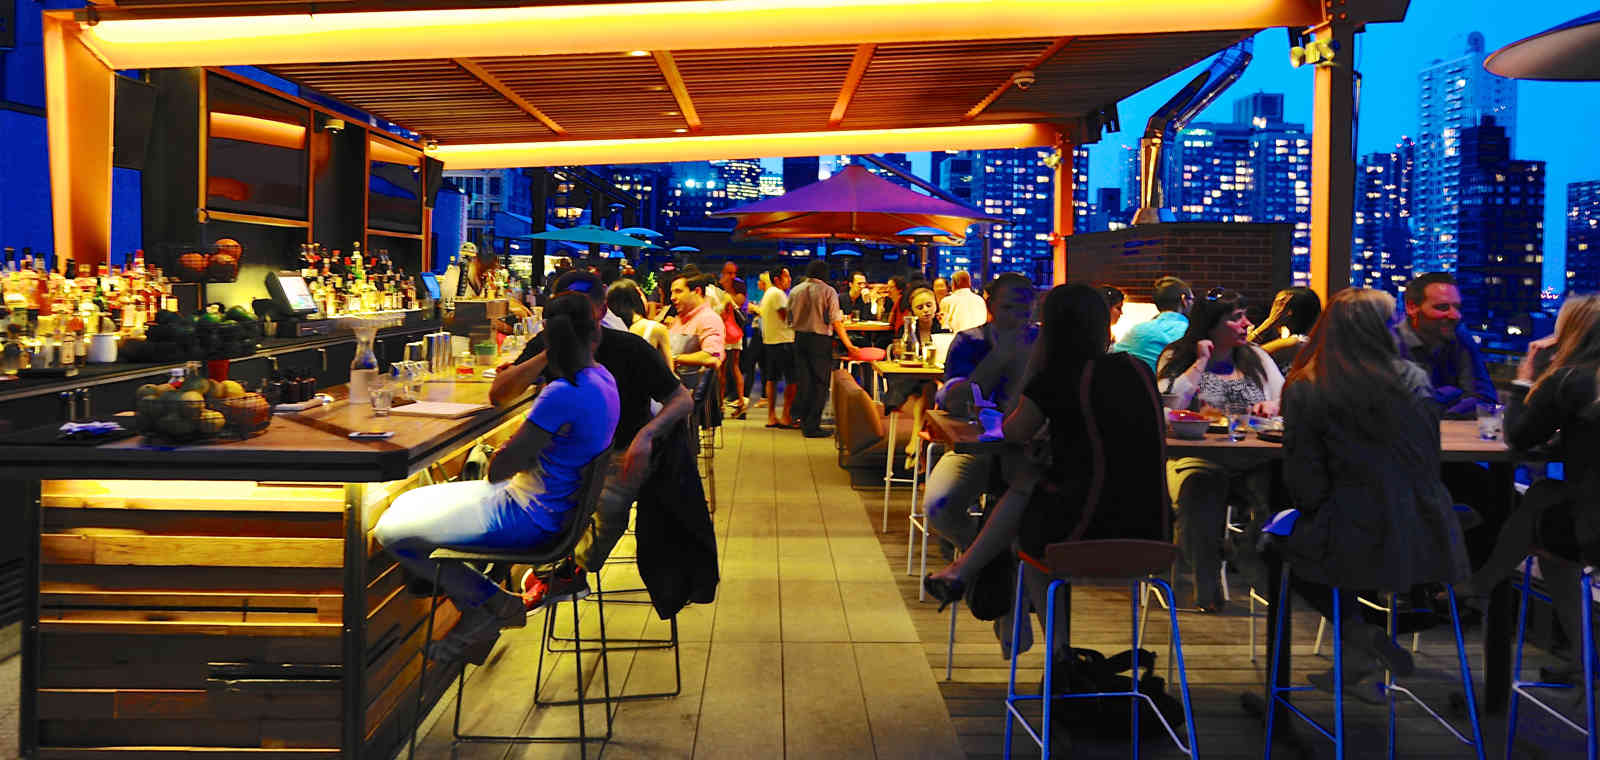 Guests Sitting At Rooftop Bar In The Evening